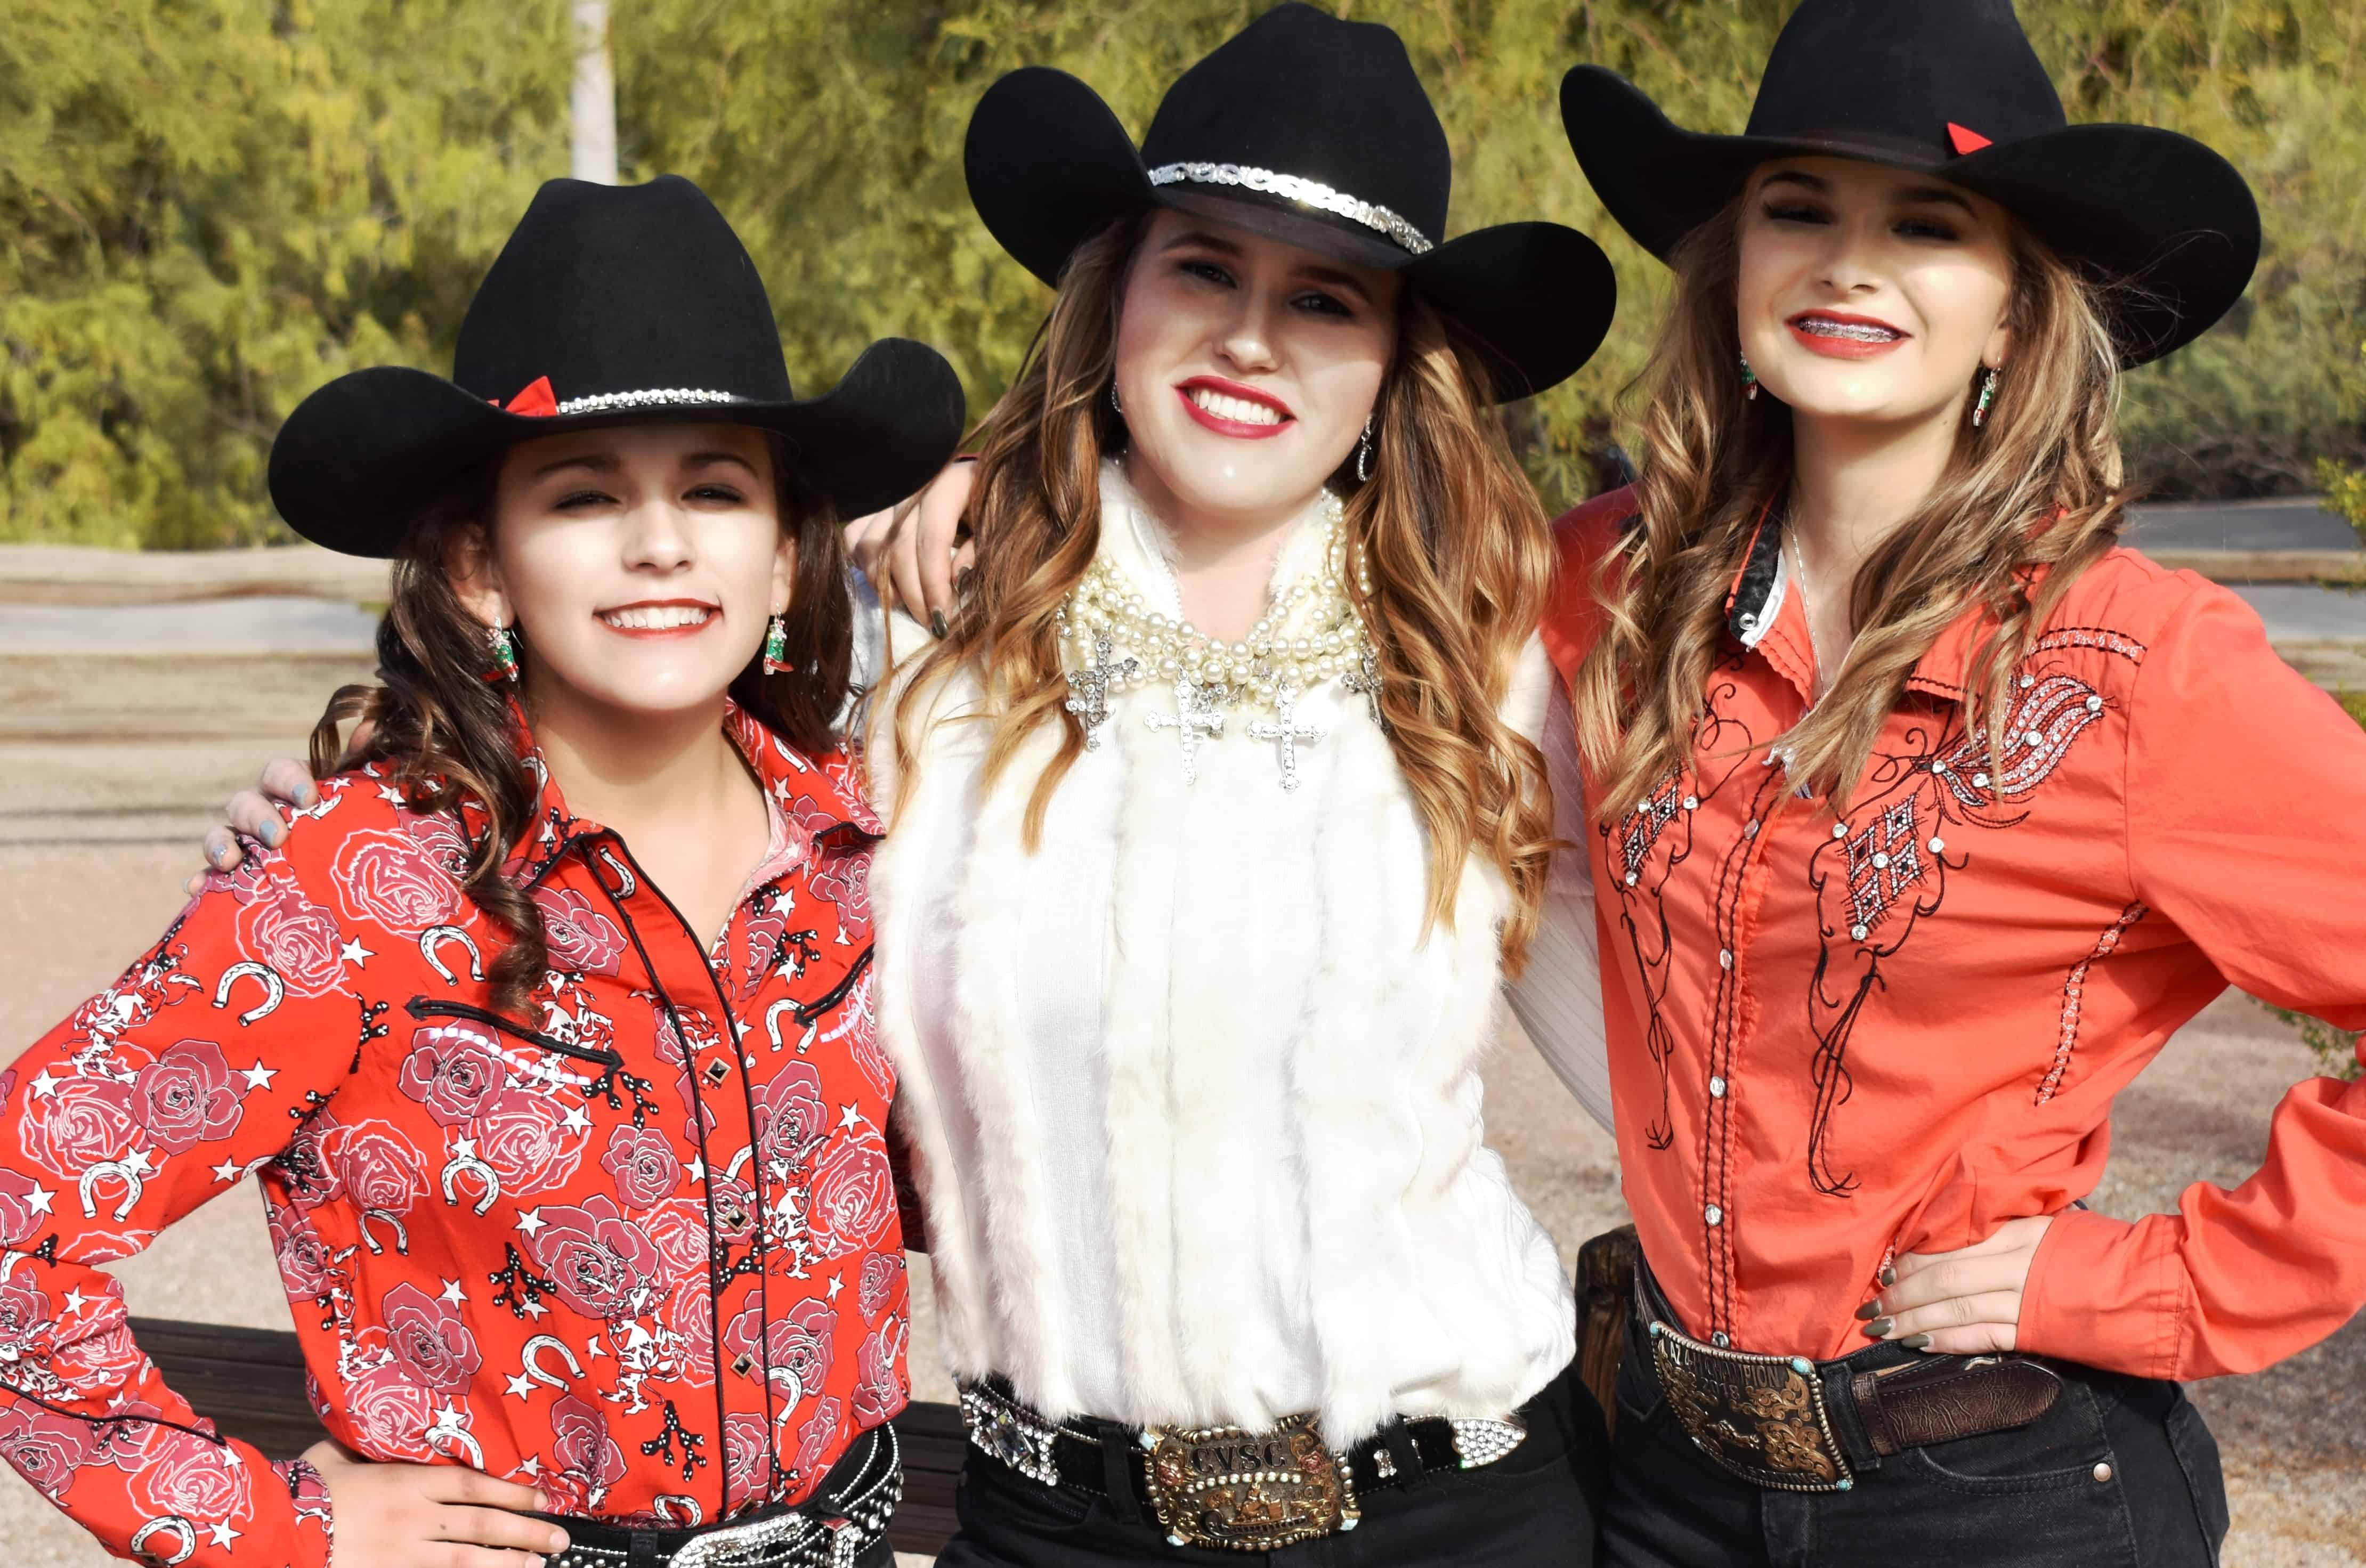 Breakaway Roping Entry Fees And Ground Rules Have Been